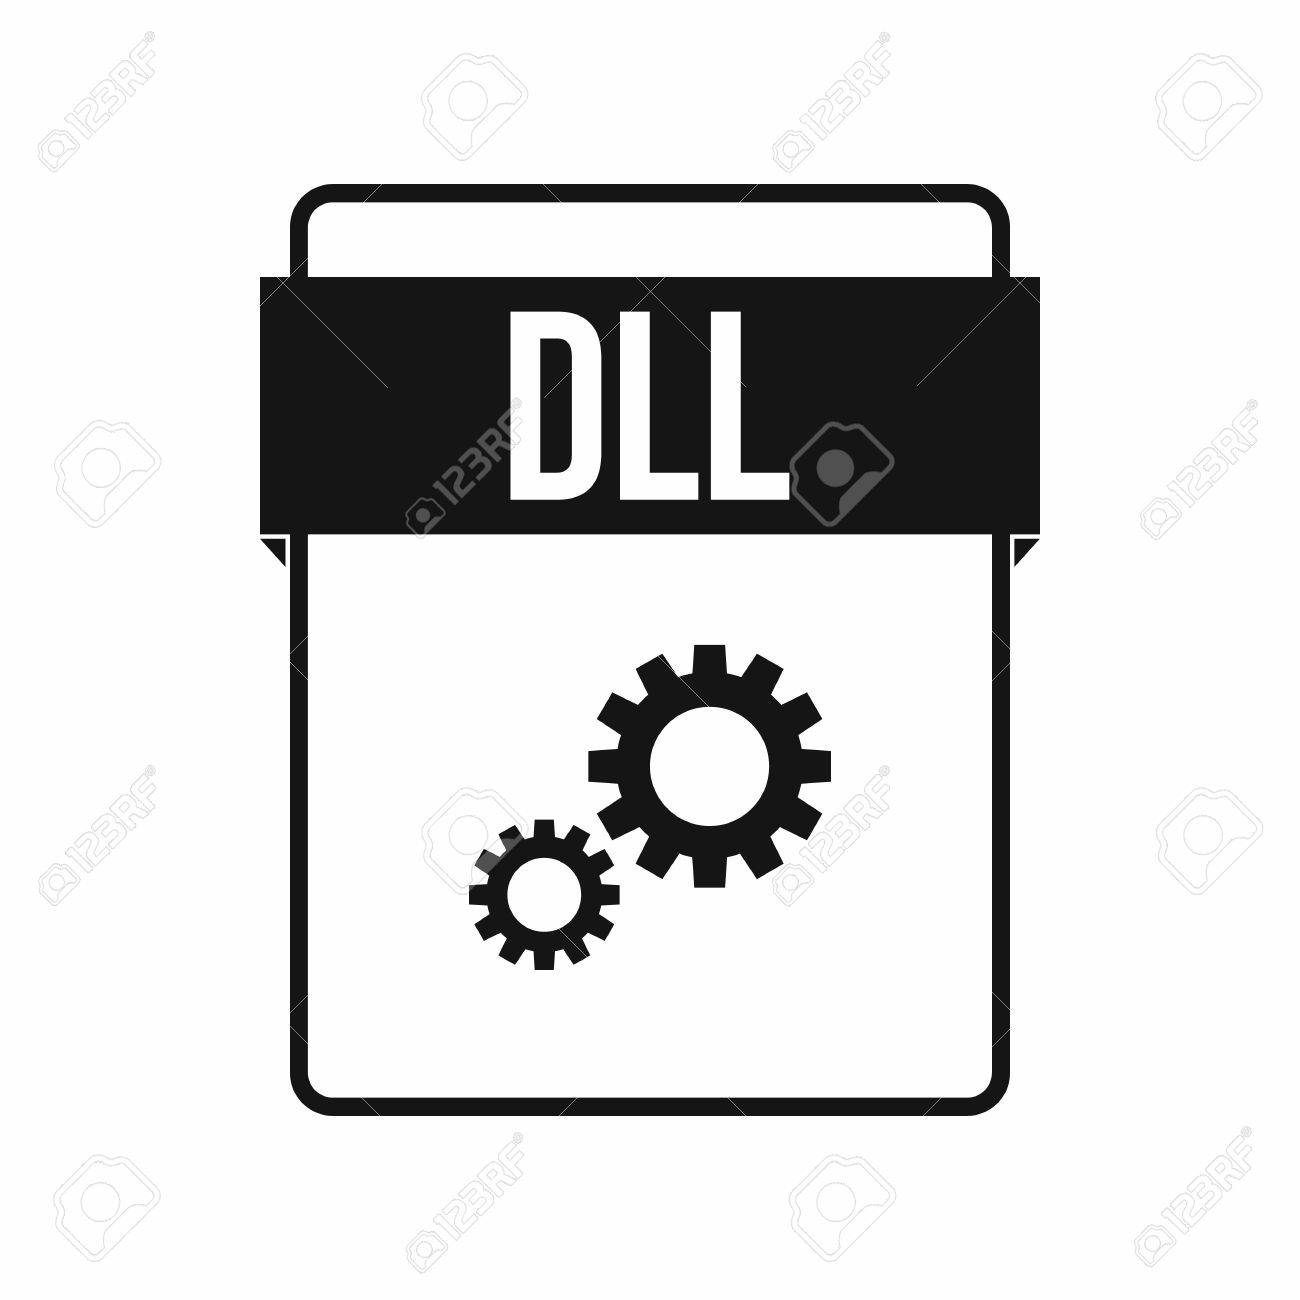 DLL file icon in simple style on a white background - 61121501